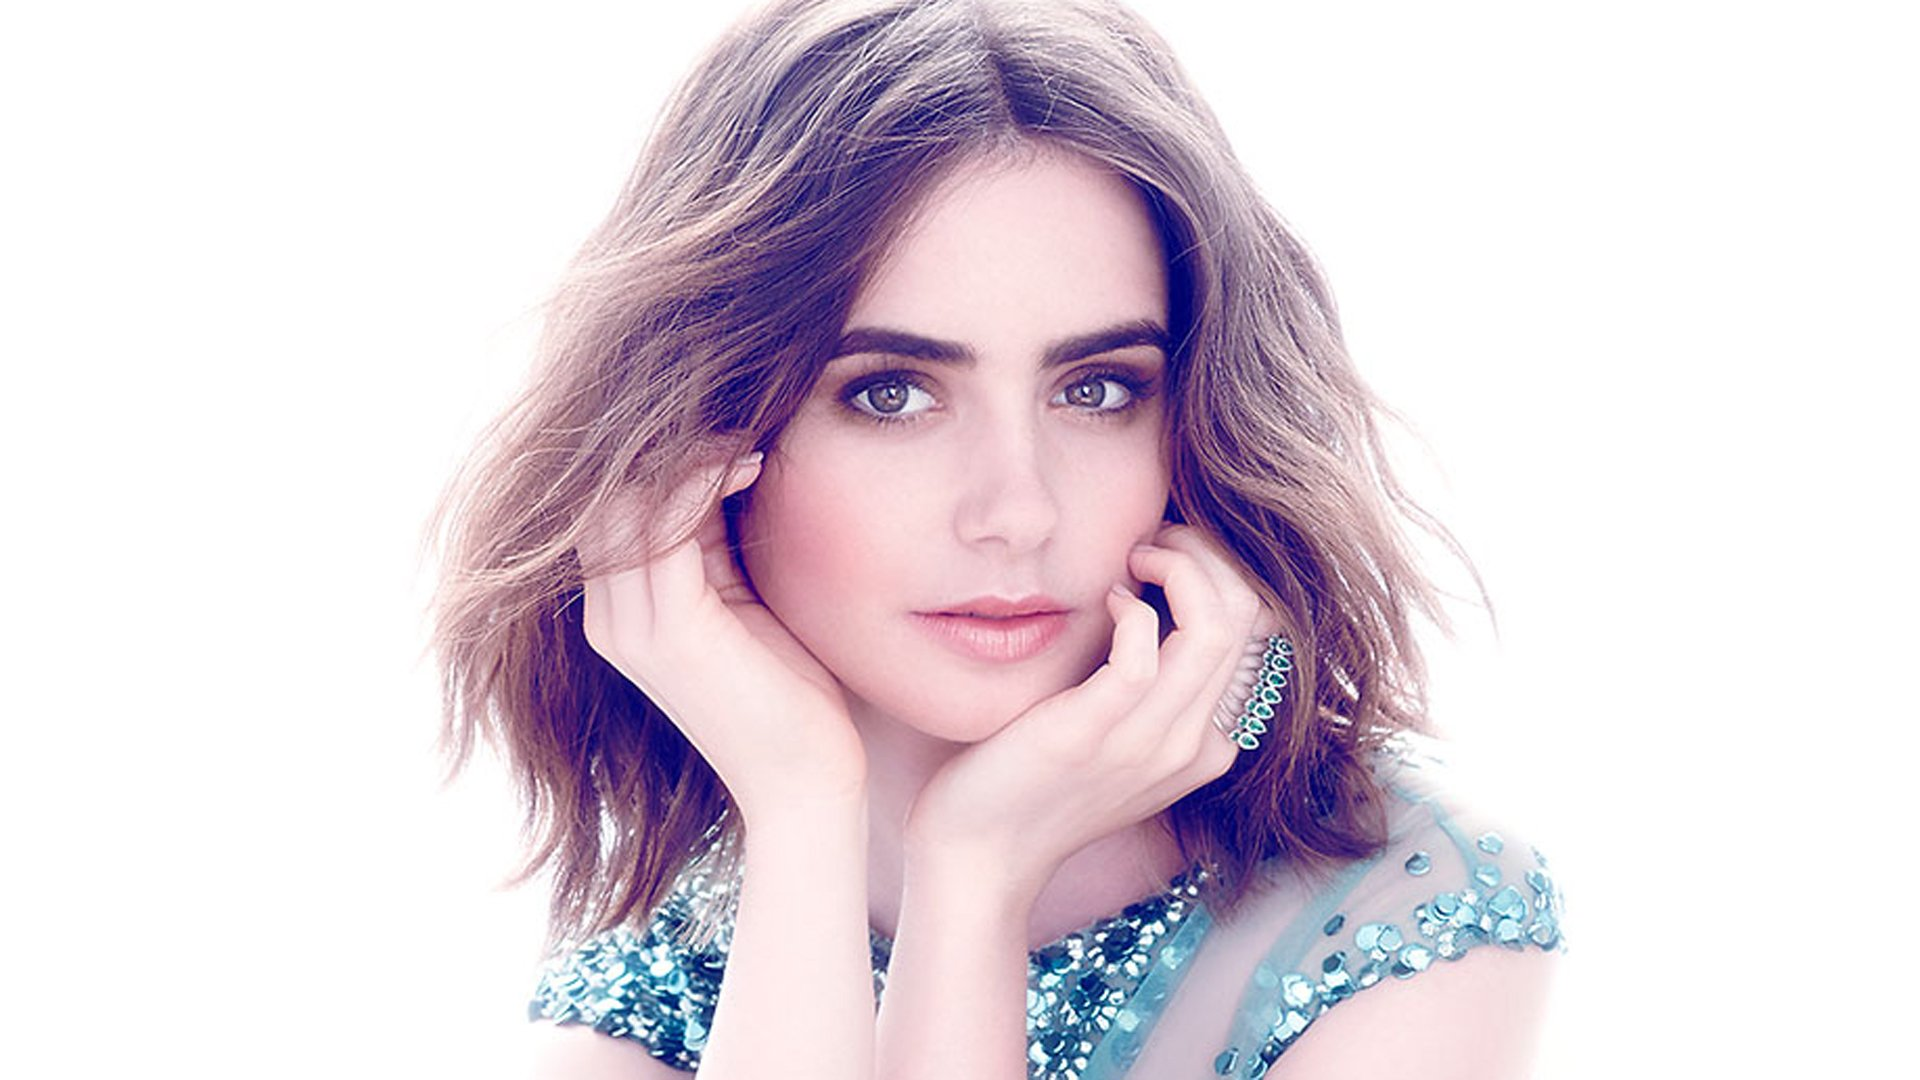 HD Lily Collins Wallpapers HdCoolWallpapersCom 1920x1080